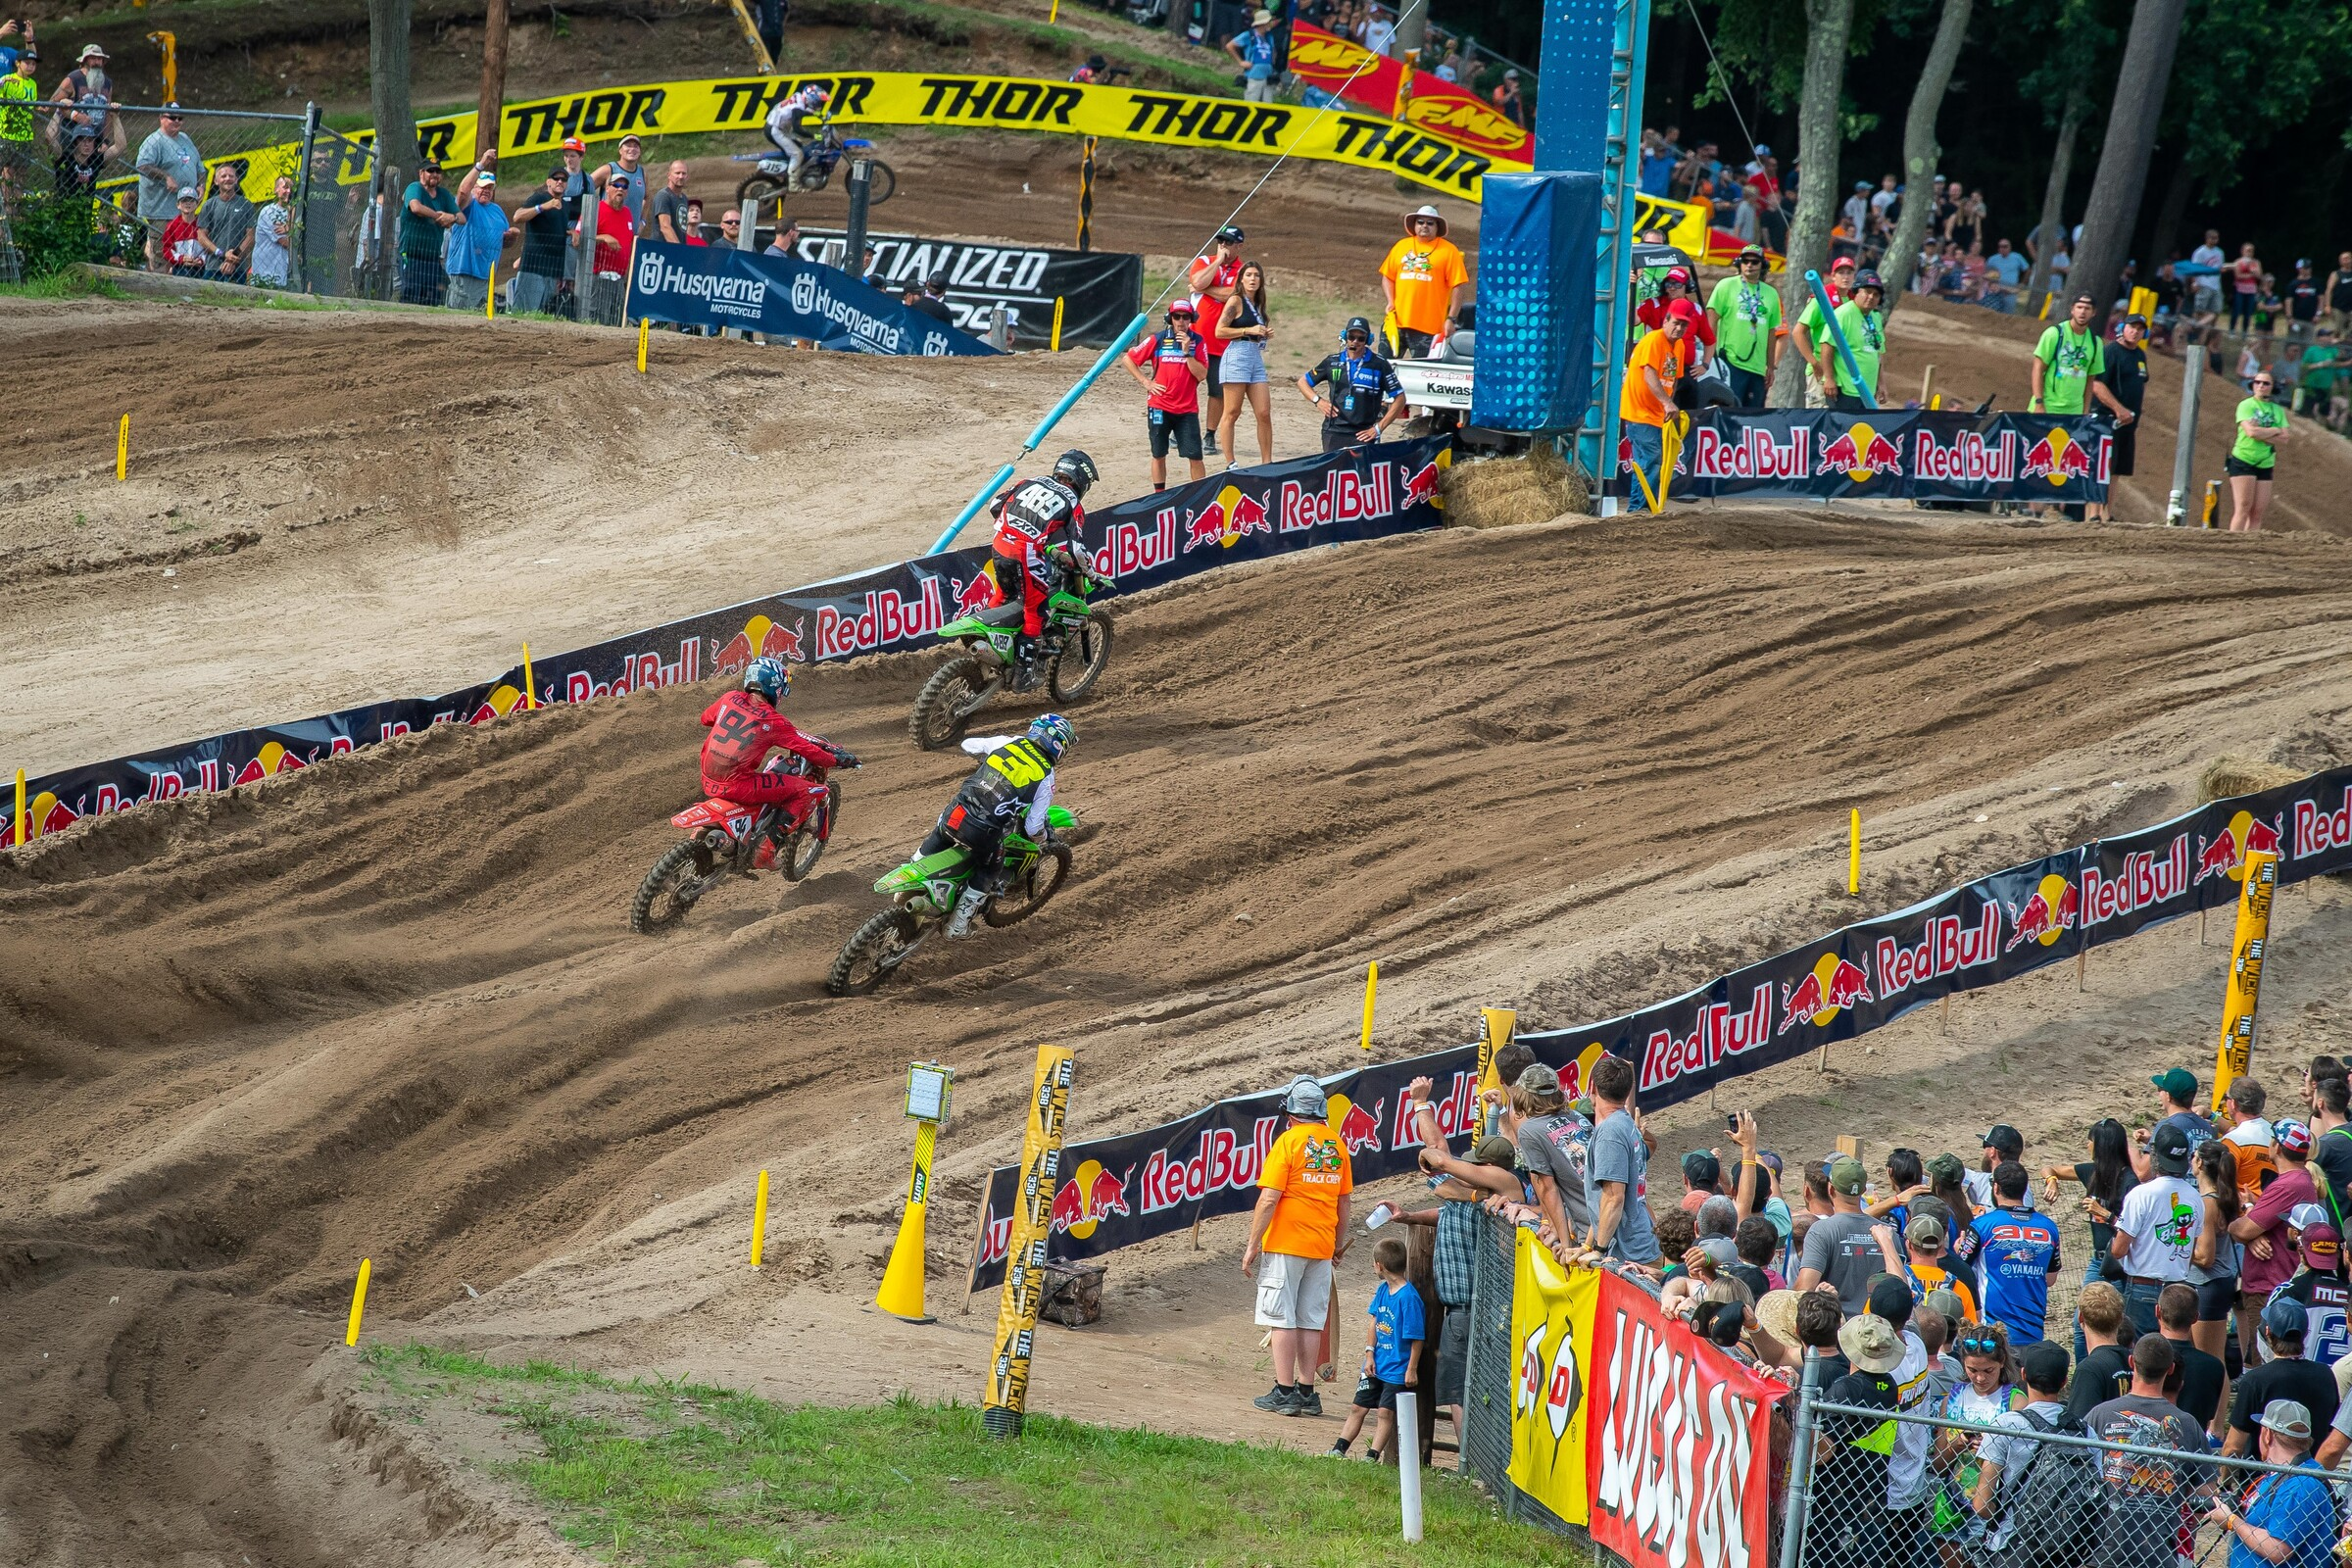 Tomac taking the lead from Roczen in the second moto. His eighth in moto 1 held him to fourth overall on the day.